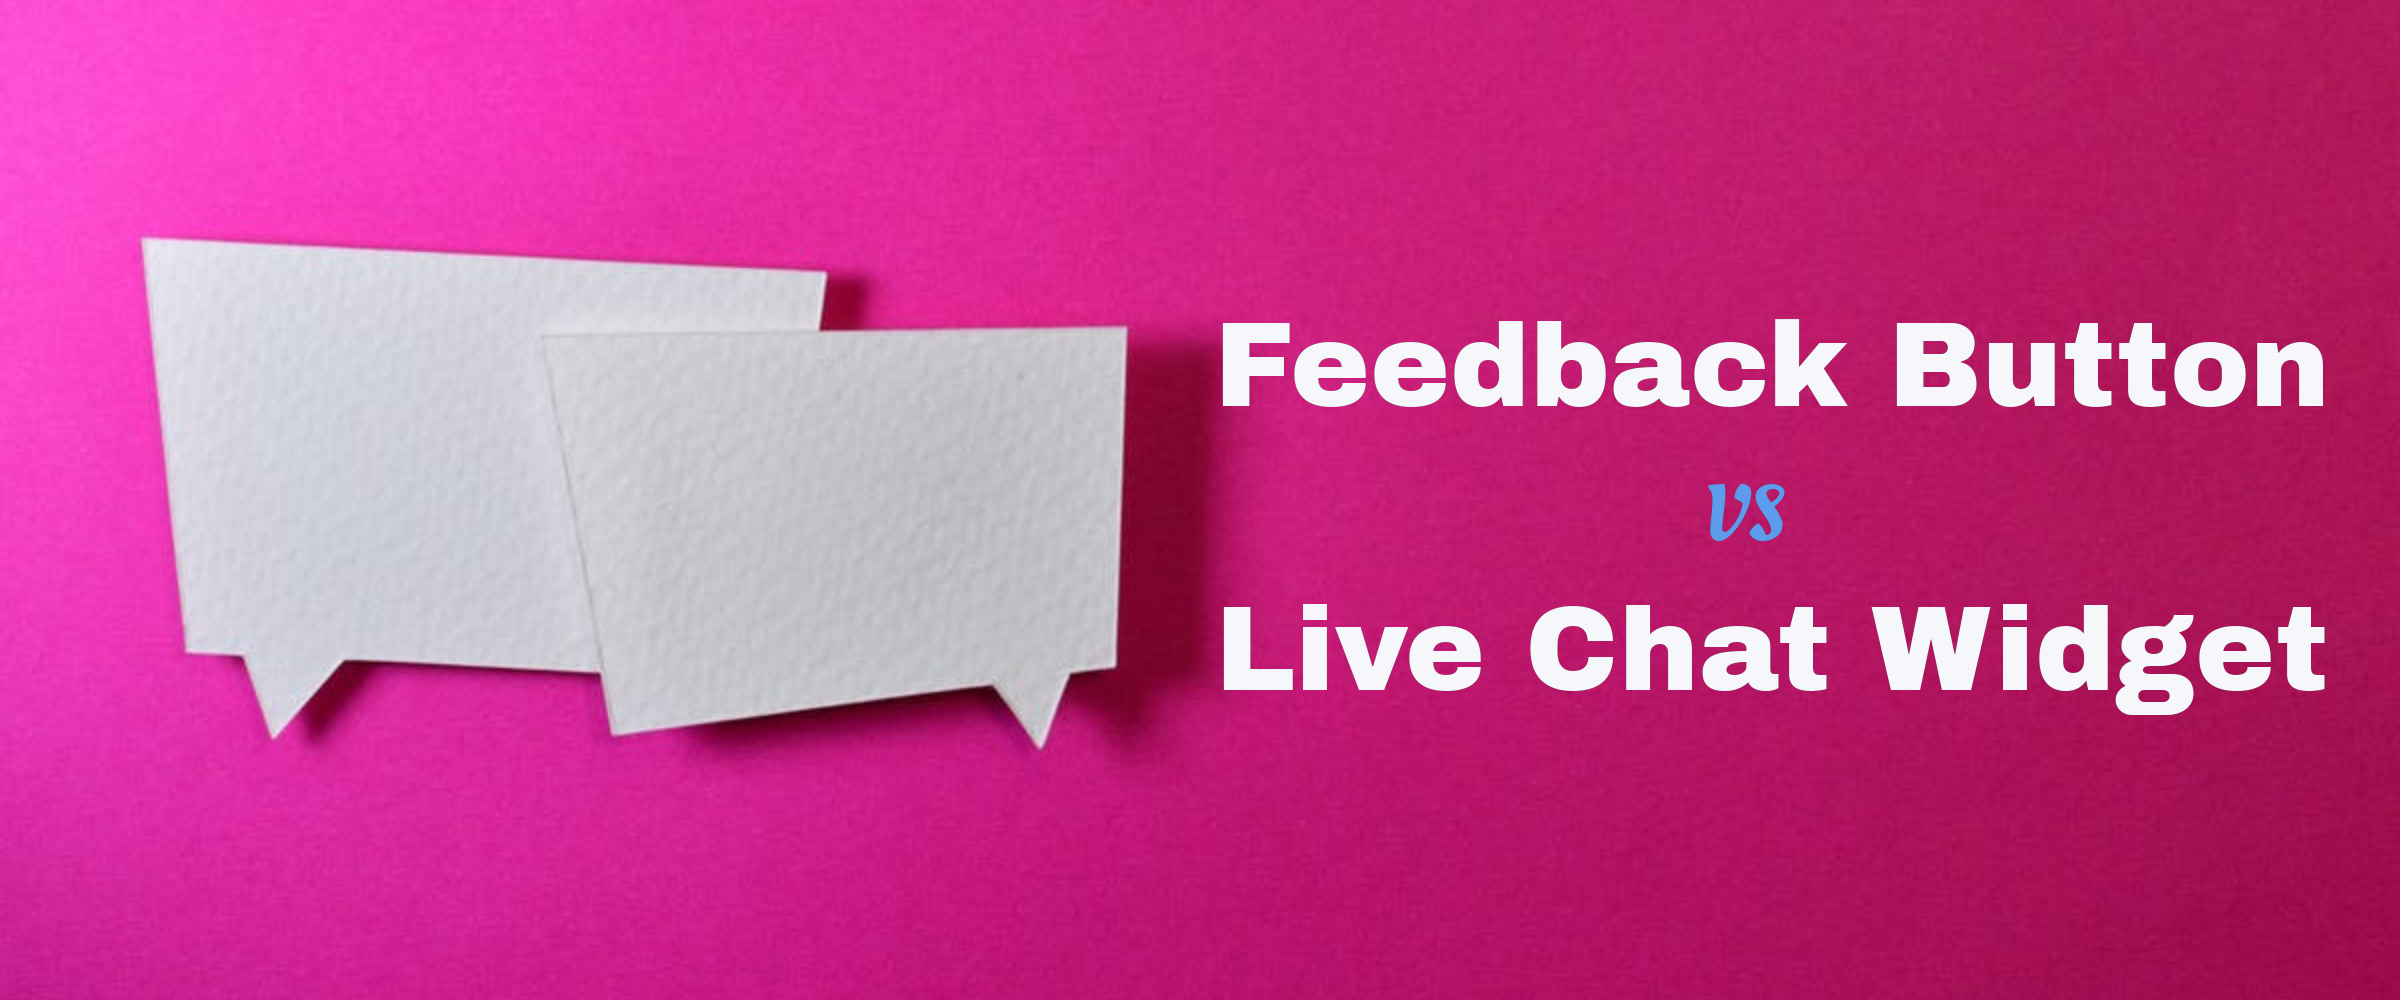 Website Feedback Tool vs Live Chat Widget